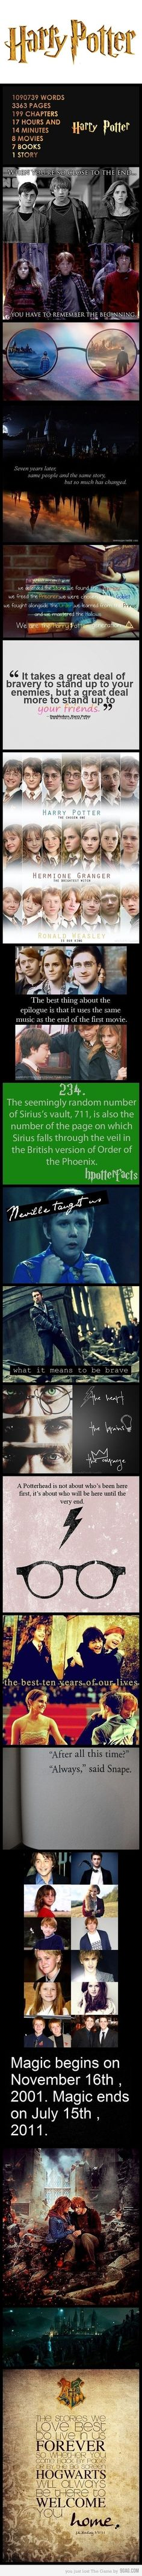 Harry Potter generation!